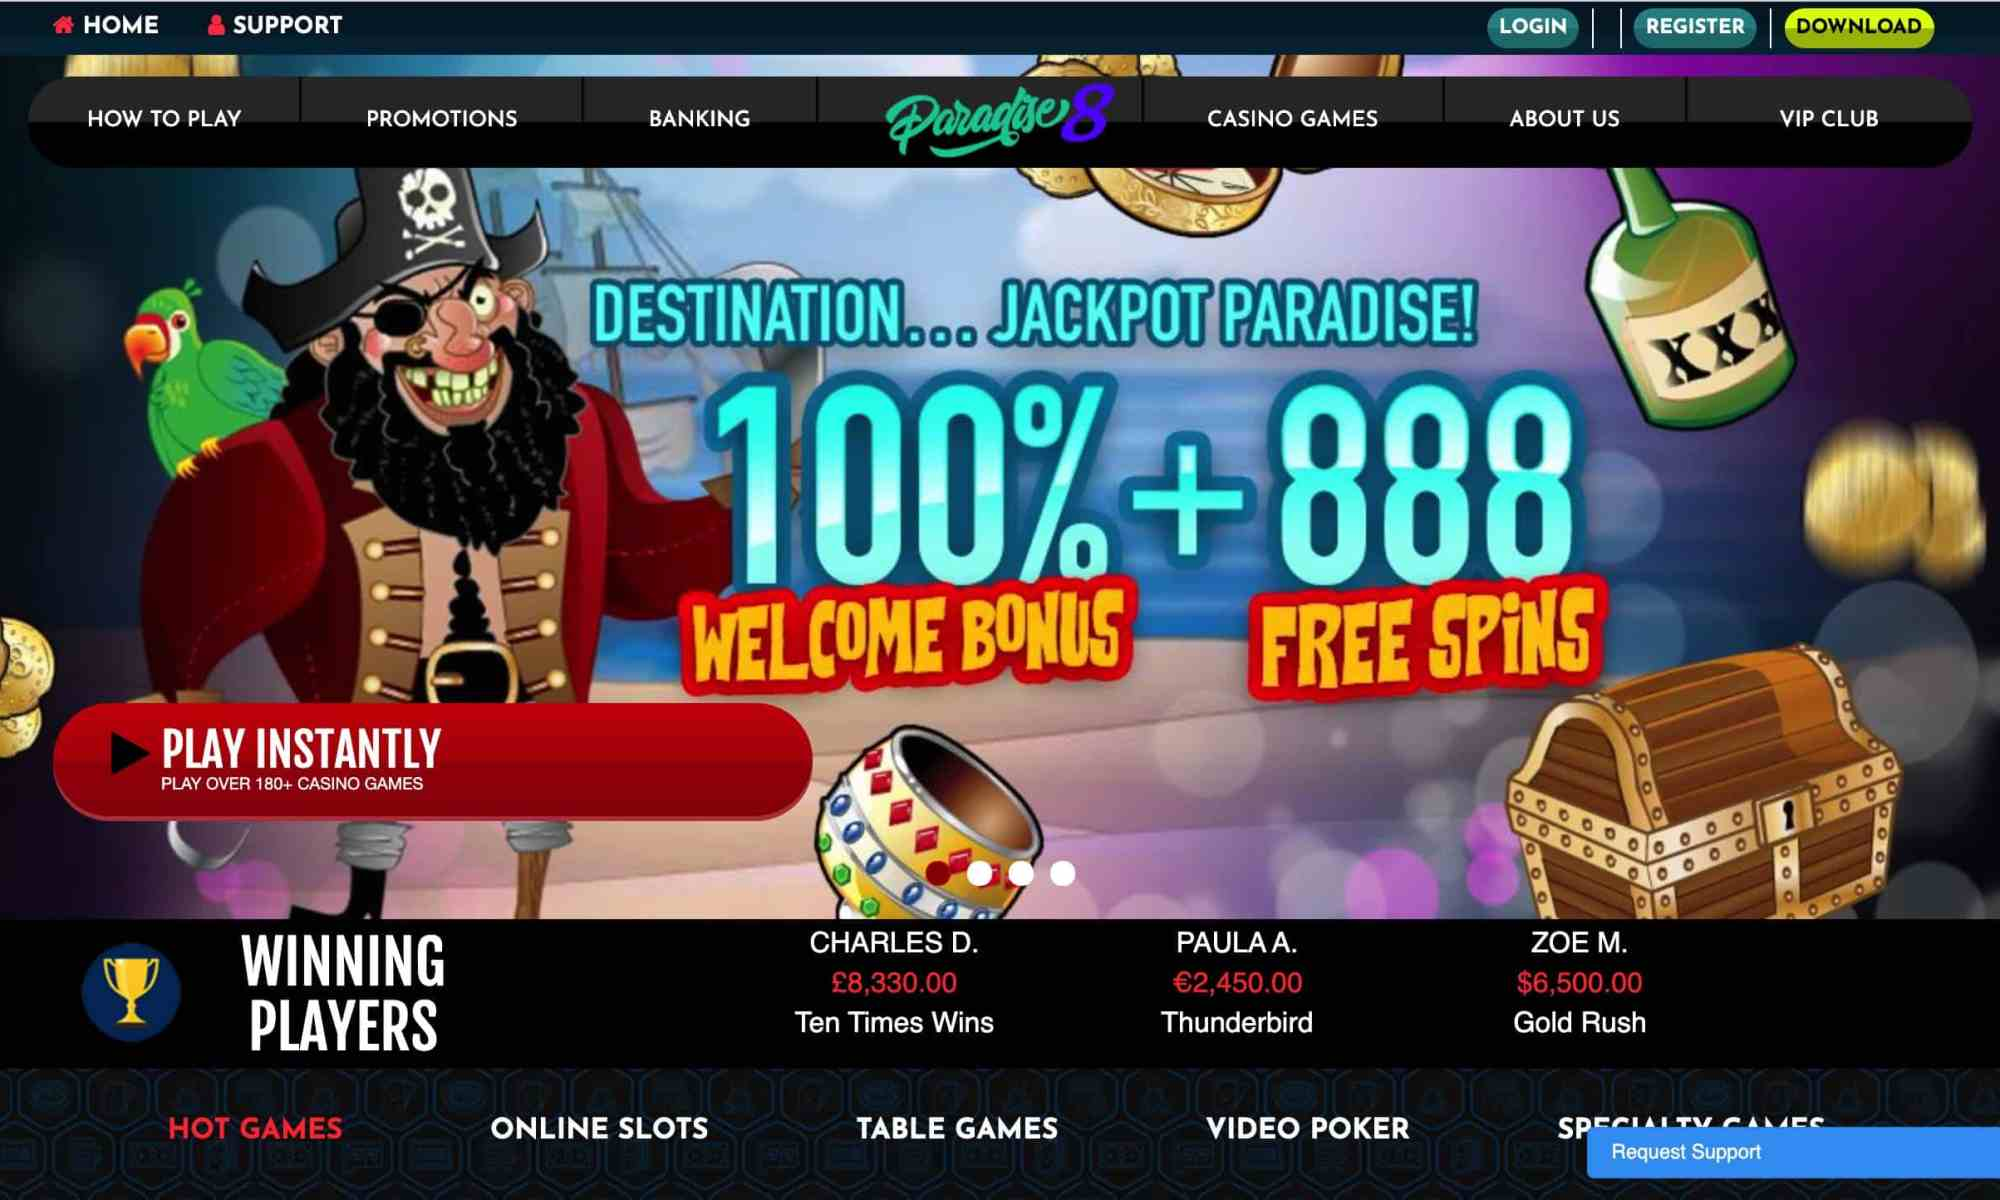 Paradise 8 Casino - 100% welcome offer + 888 free spins